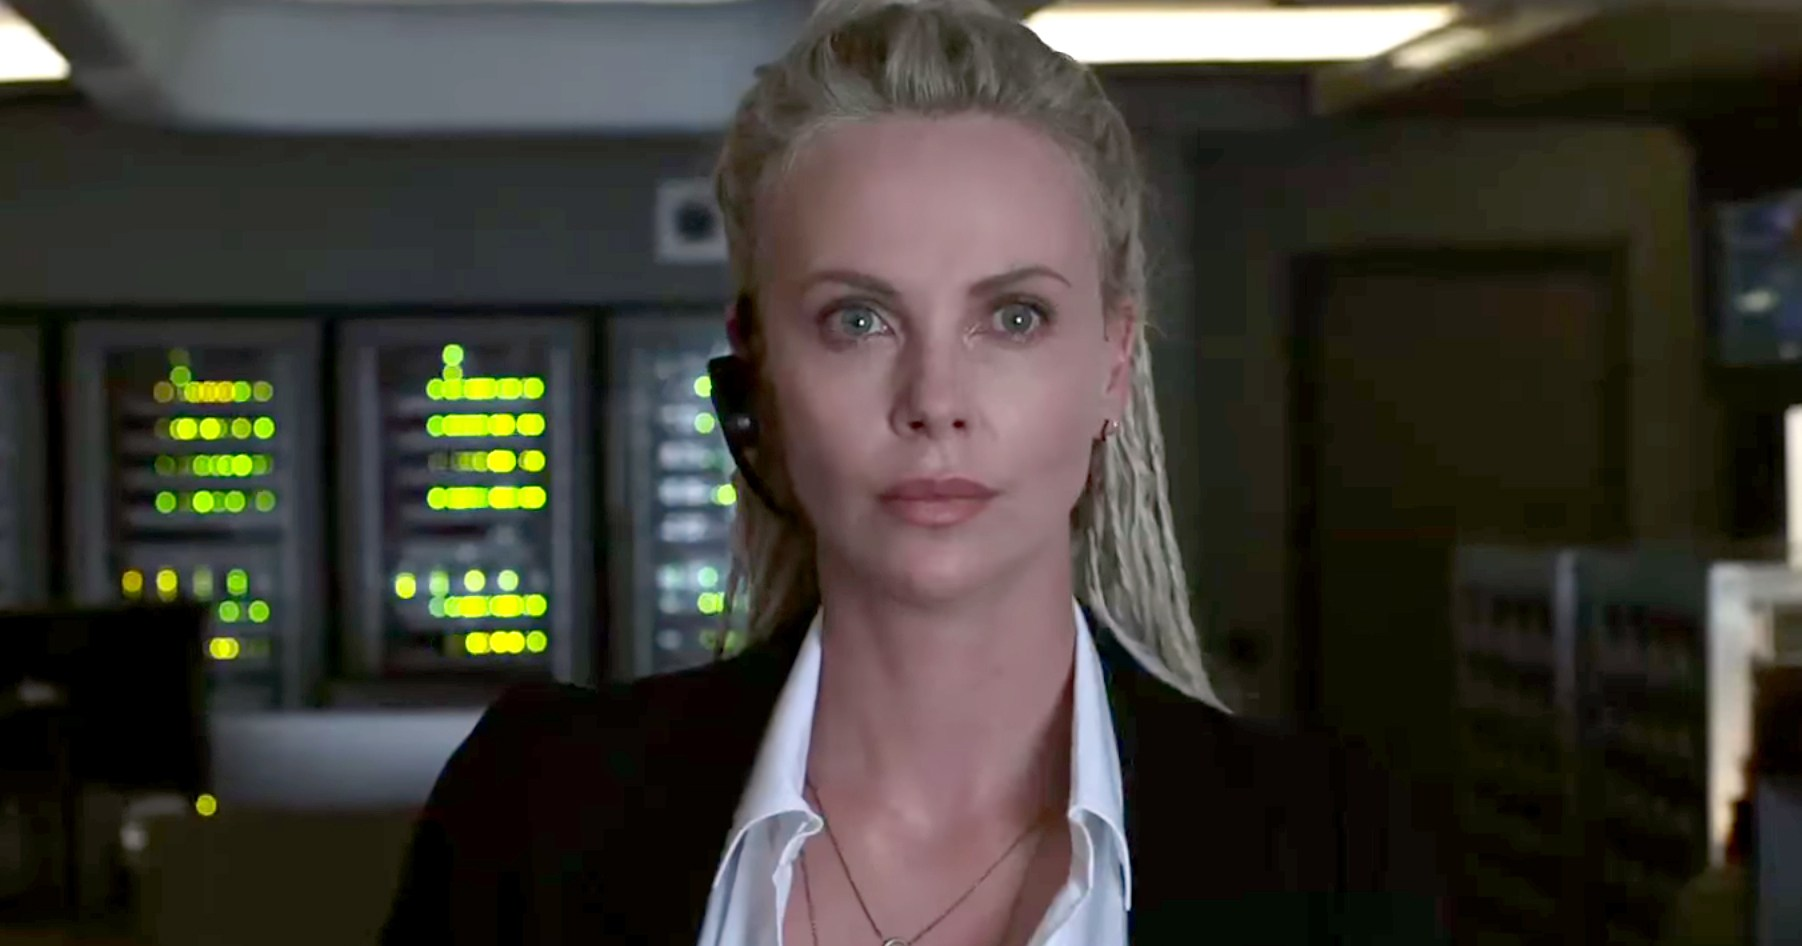 New 'The Fate of the Furious' Trailer Introduces Villainous Charlize Theron as Cipher